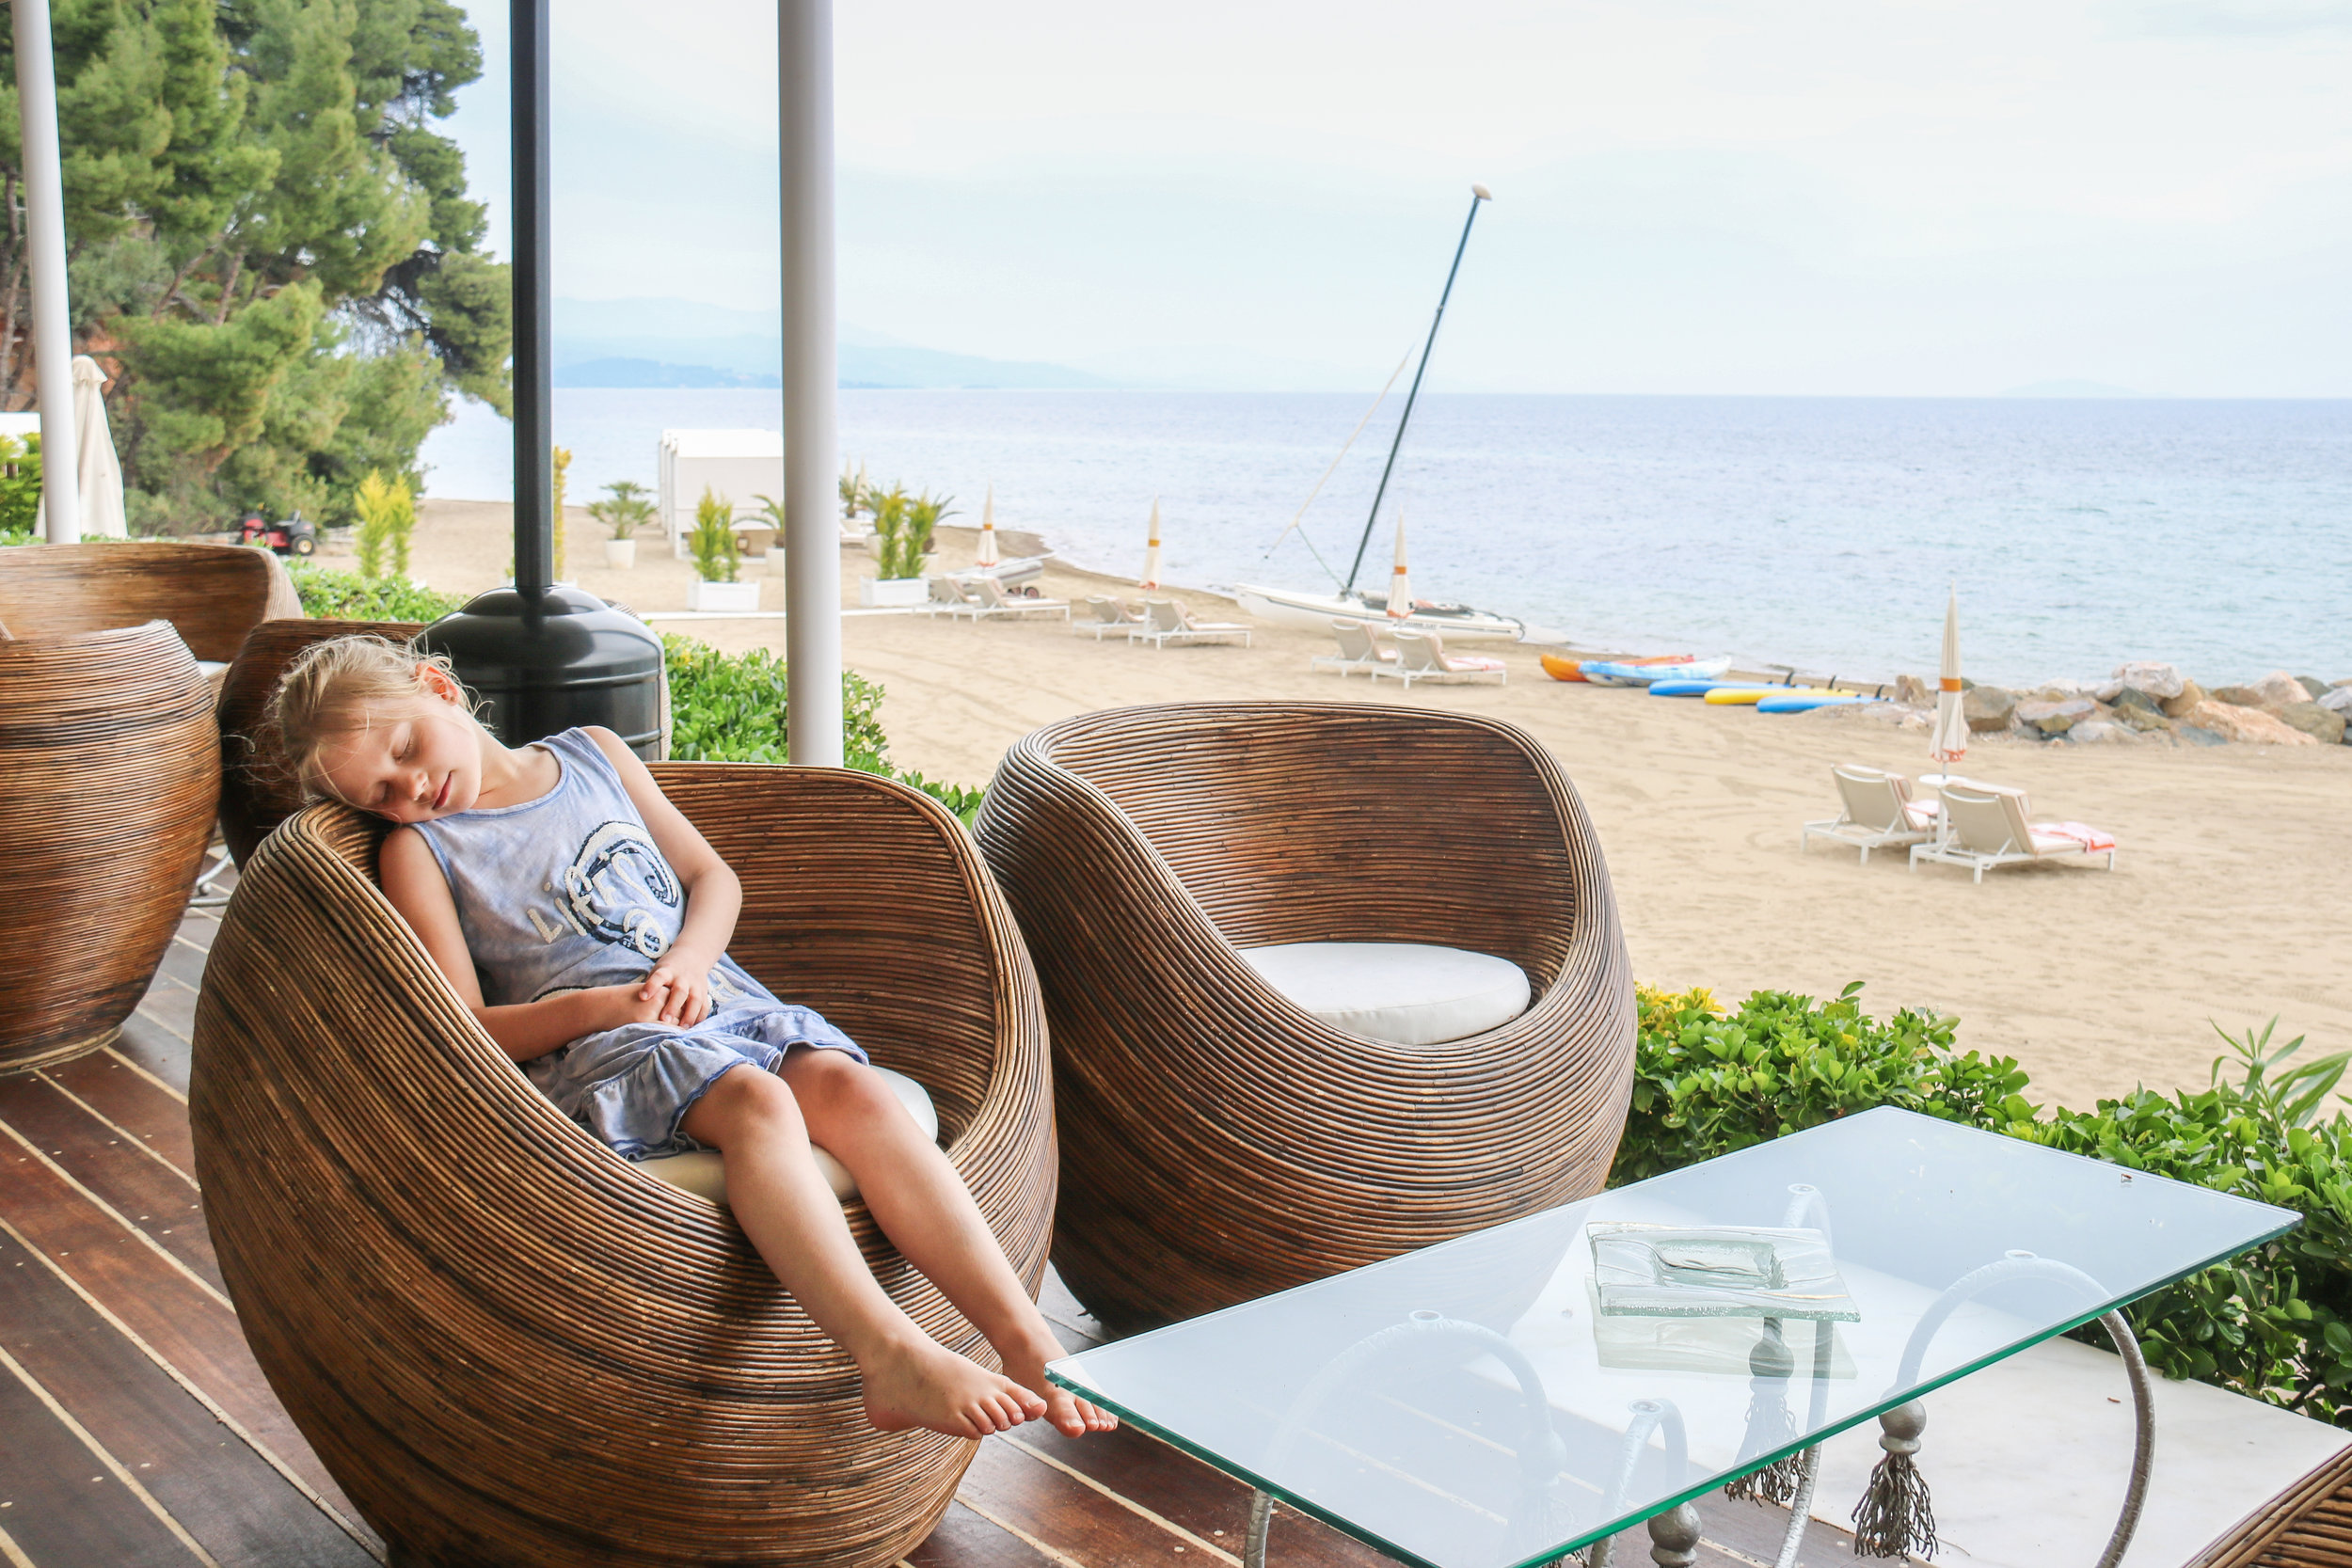 Even a short power nap is possible at the Beach bar